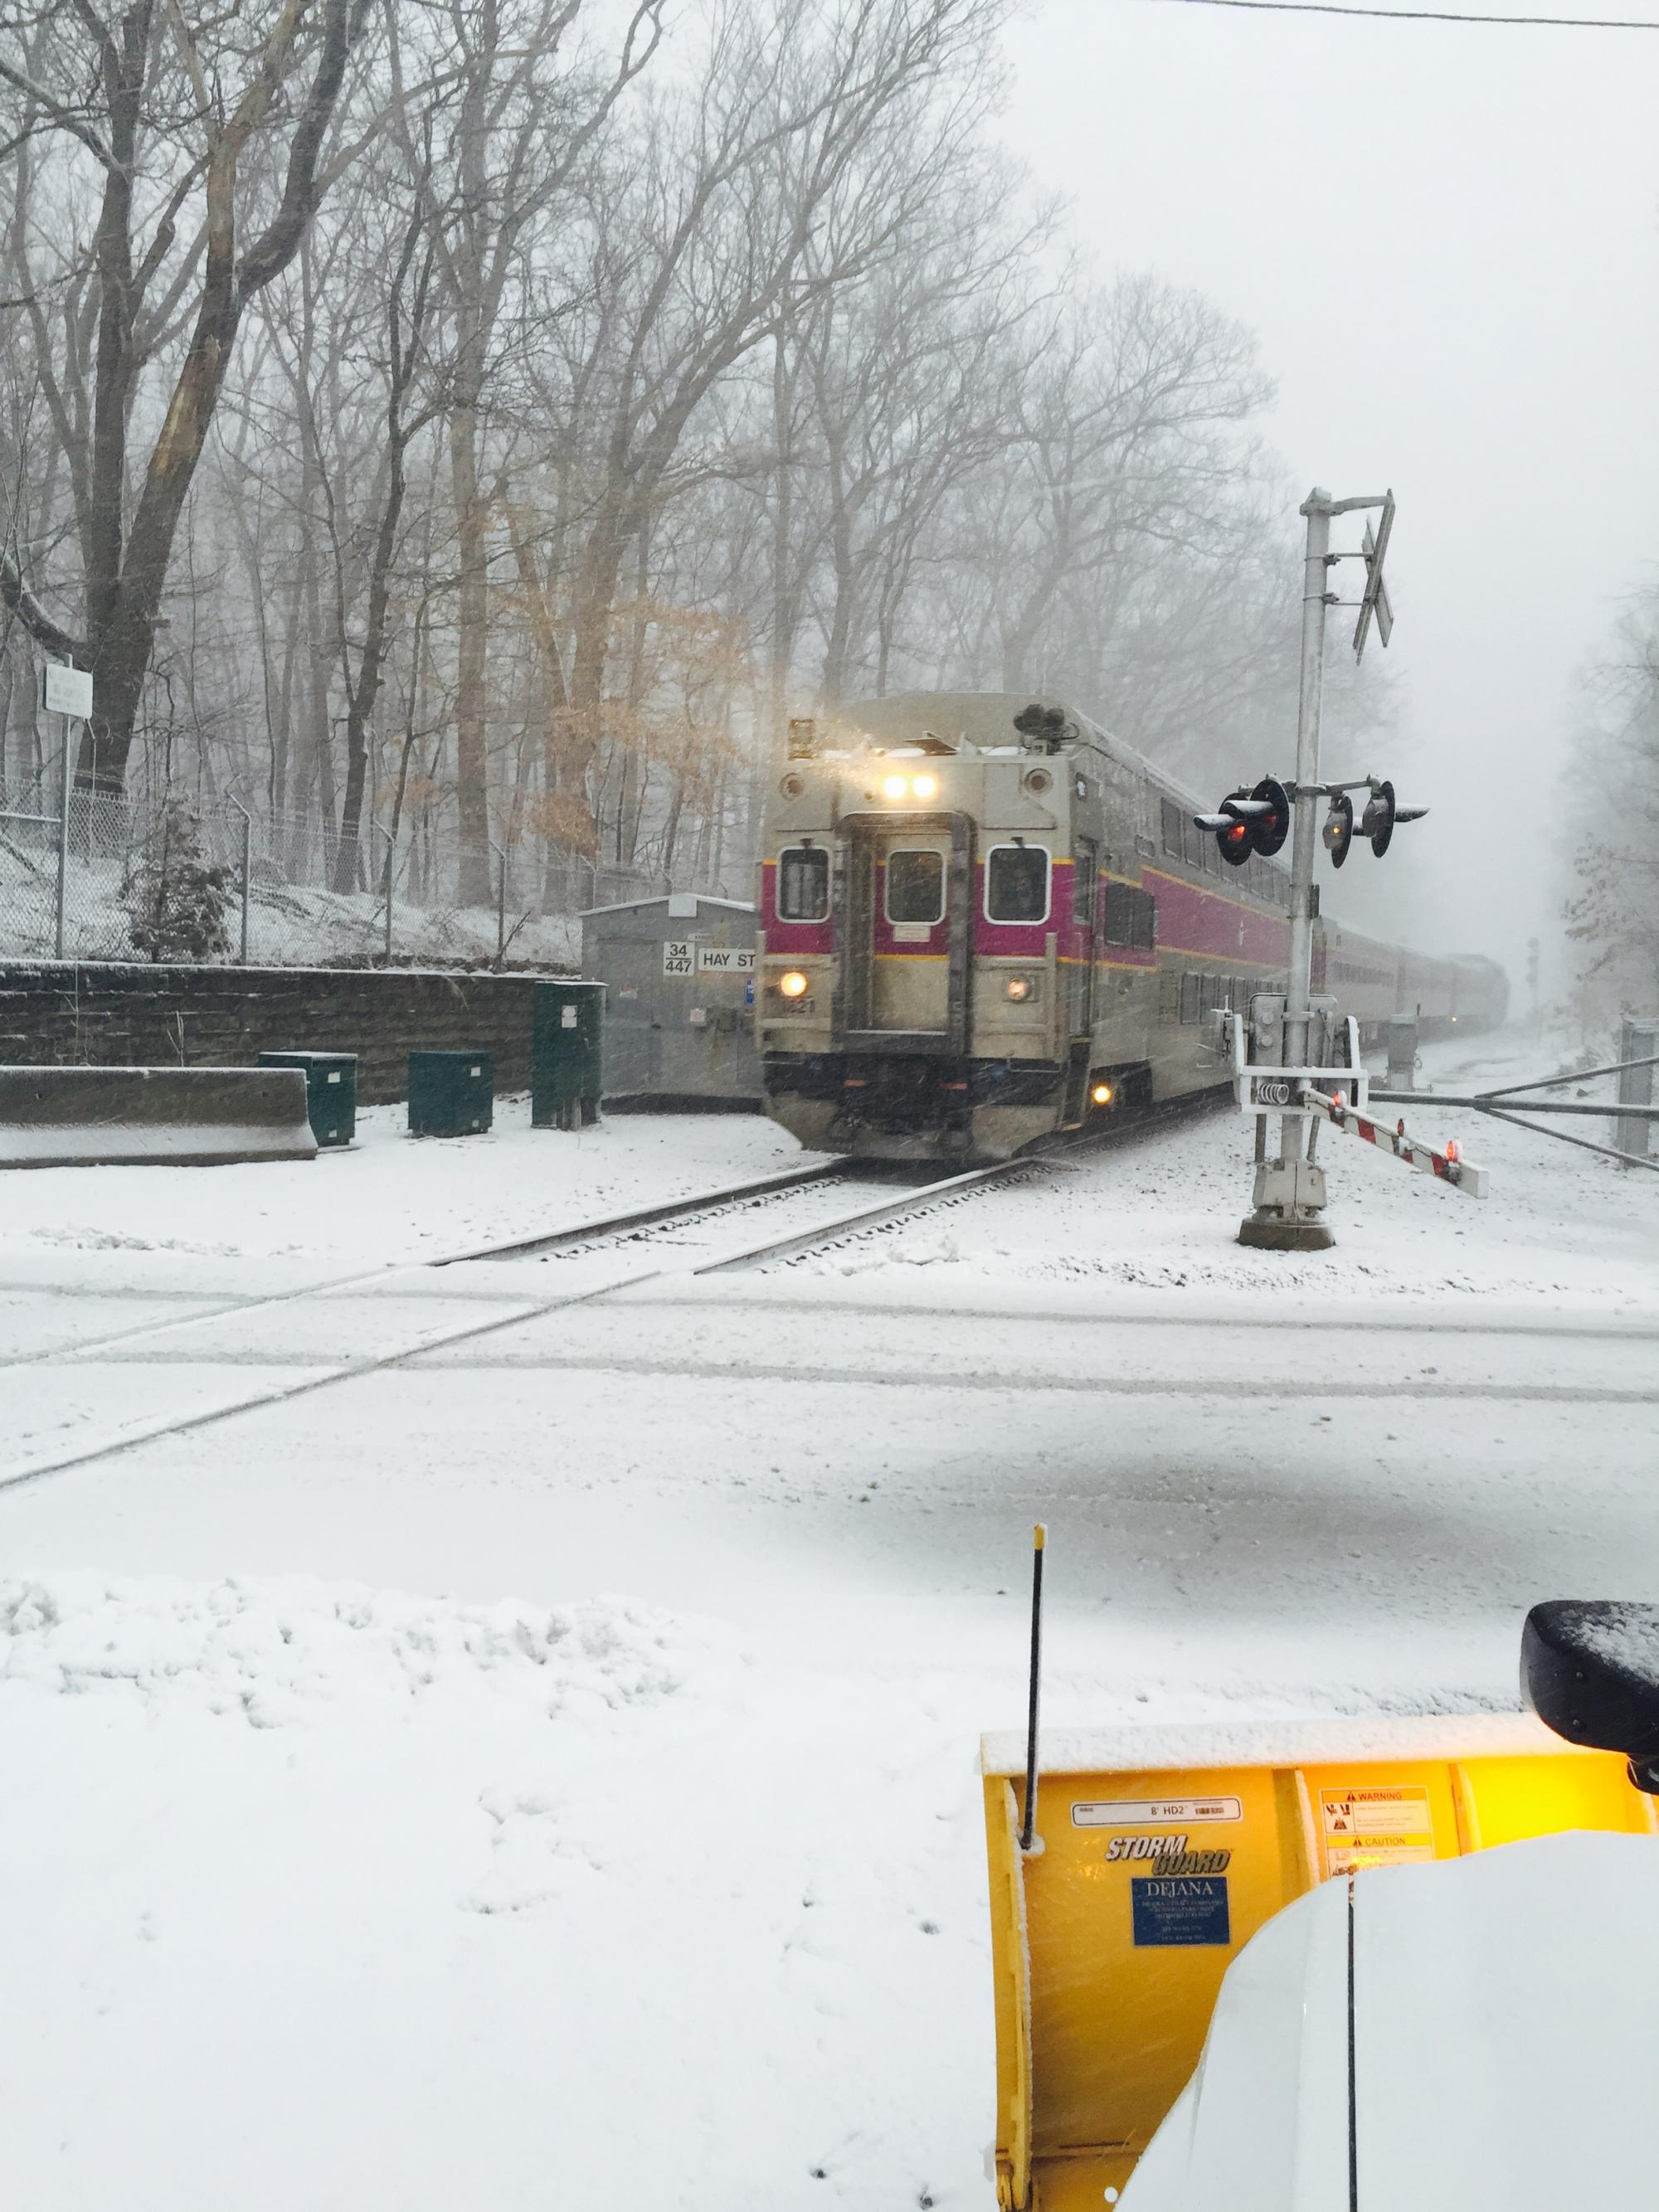 A Commuter Rail train pulls up to a crossing. In the immediate foreground, the front of a snow plow. Trees on the left.